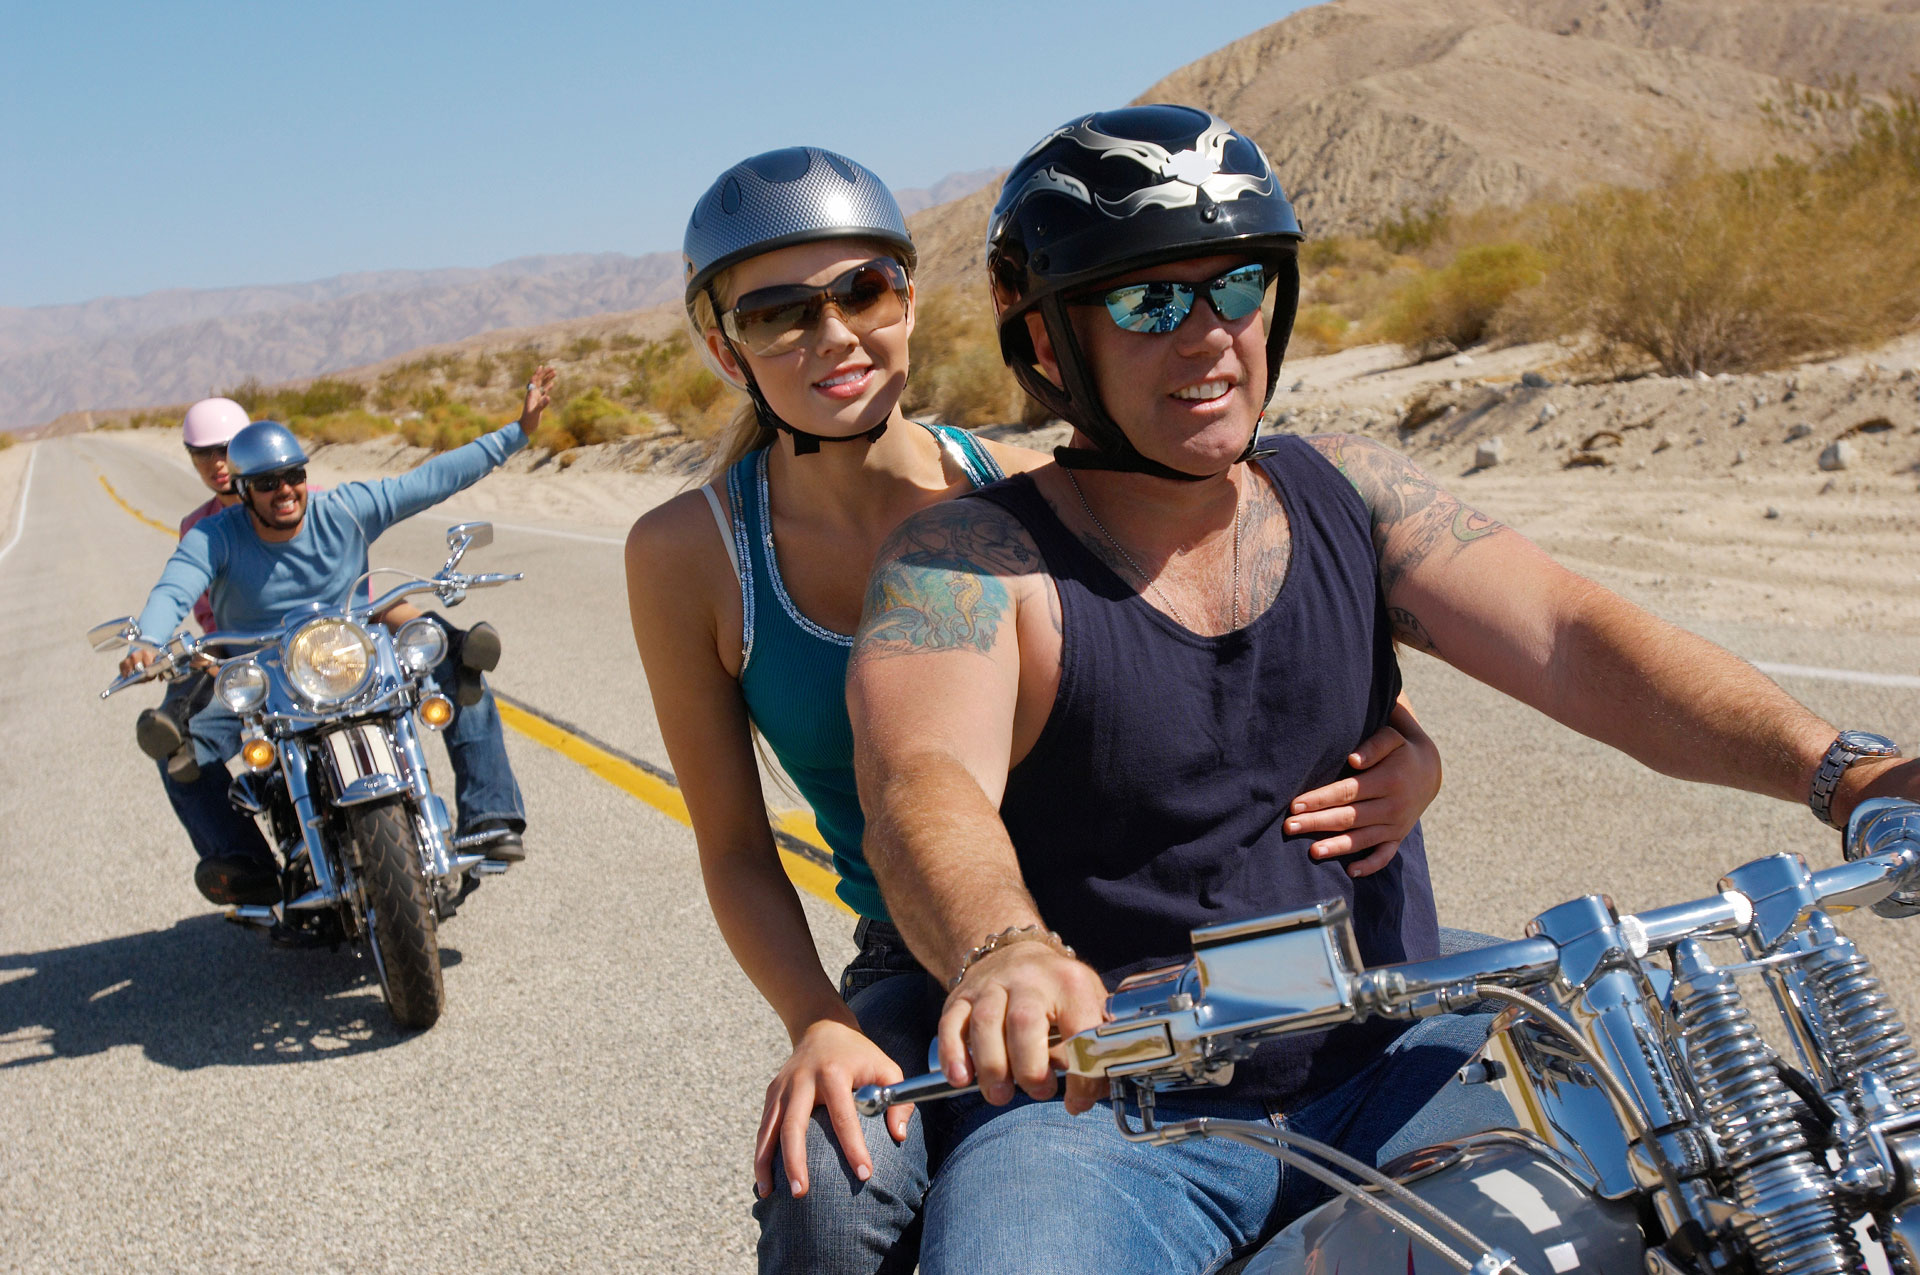 harshlaw-inland-empire-motorcycle-accident-attorney